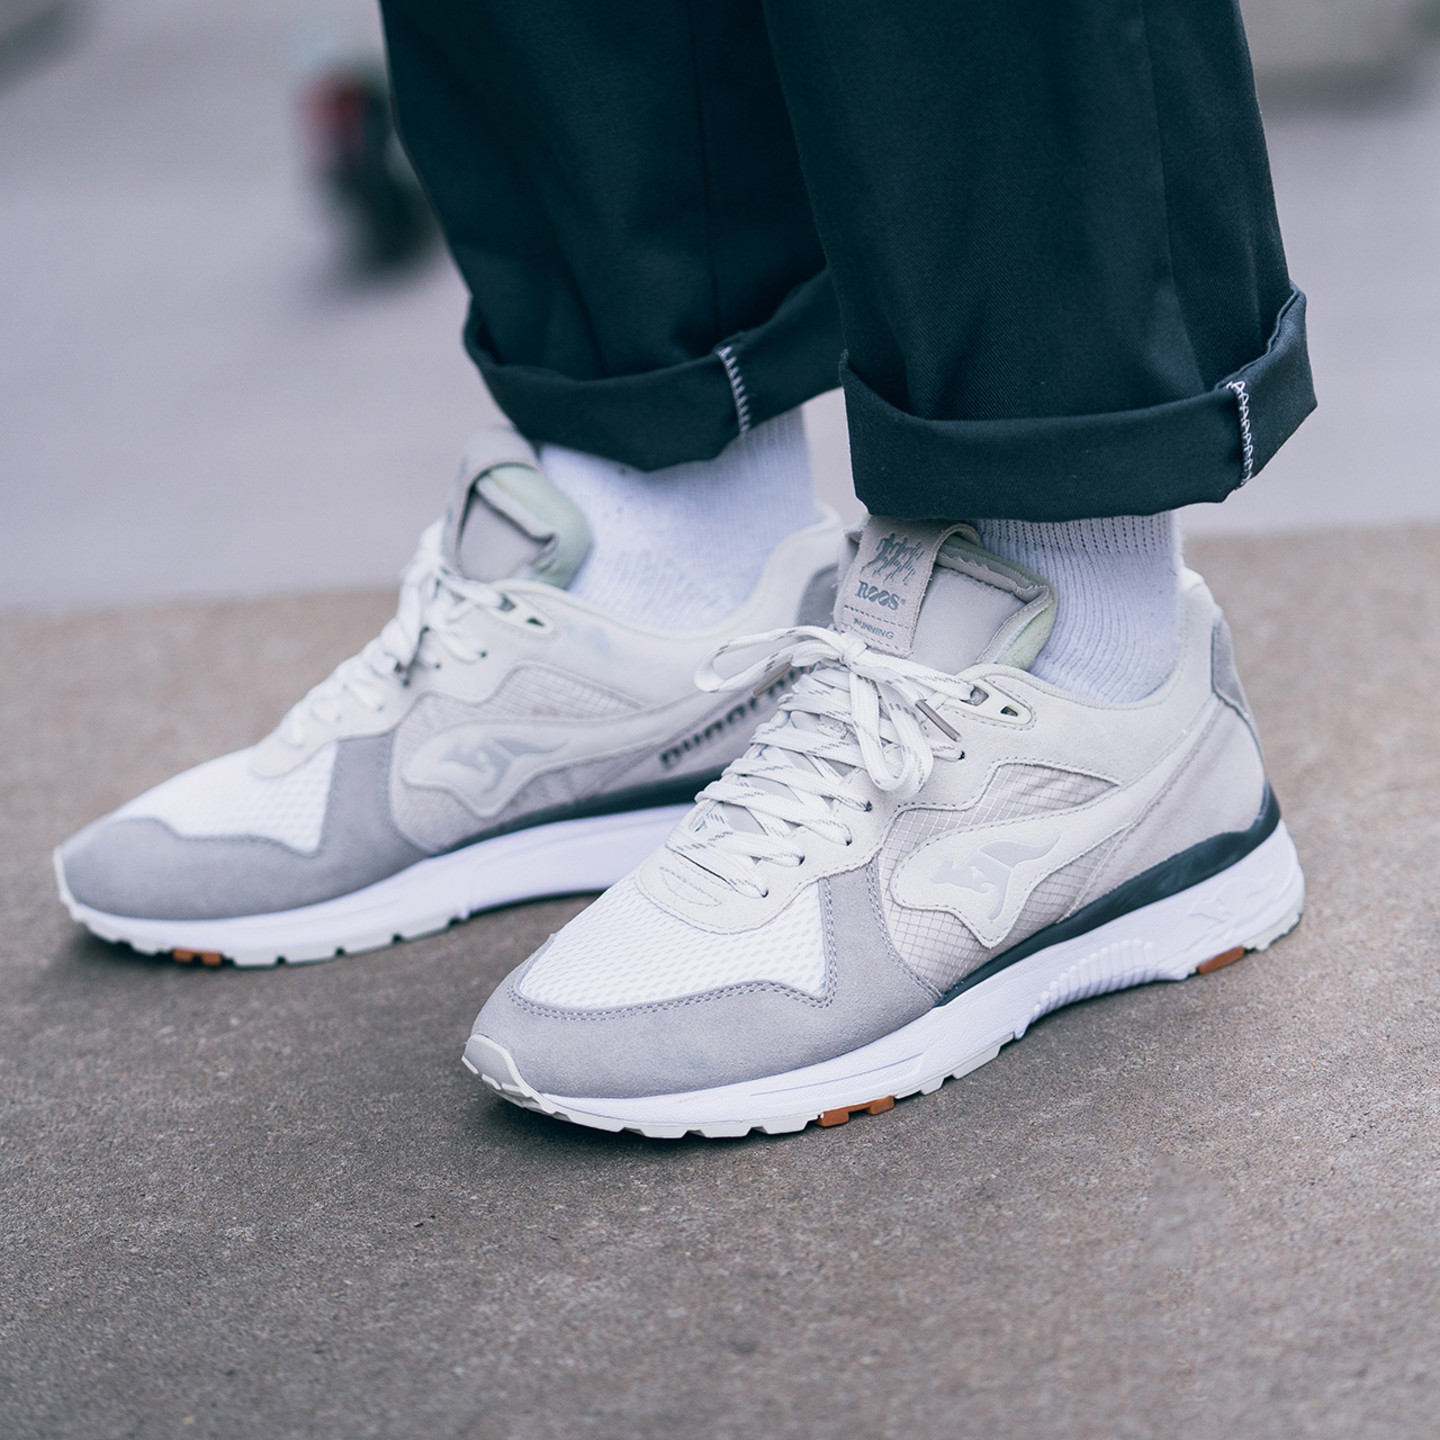 KangaROOS Finalist Future Brightside Off White / Light Grey / Pure White 47257-0035